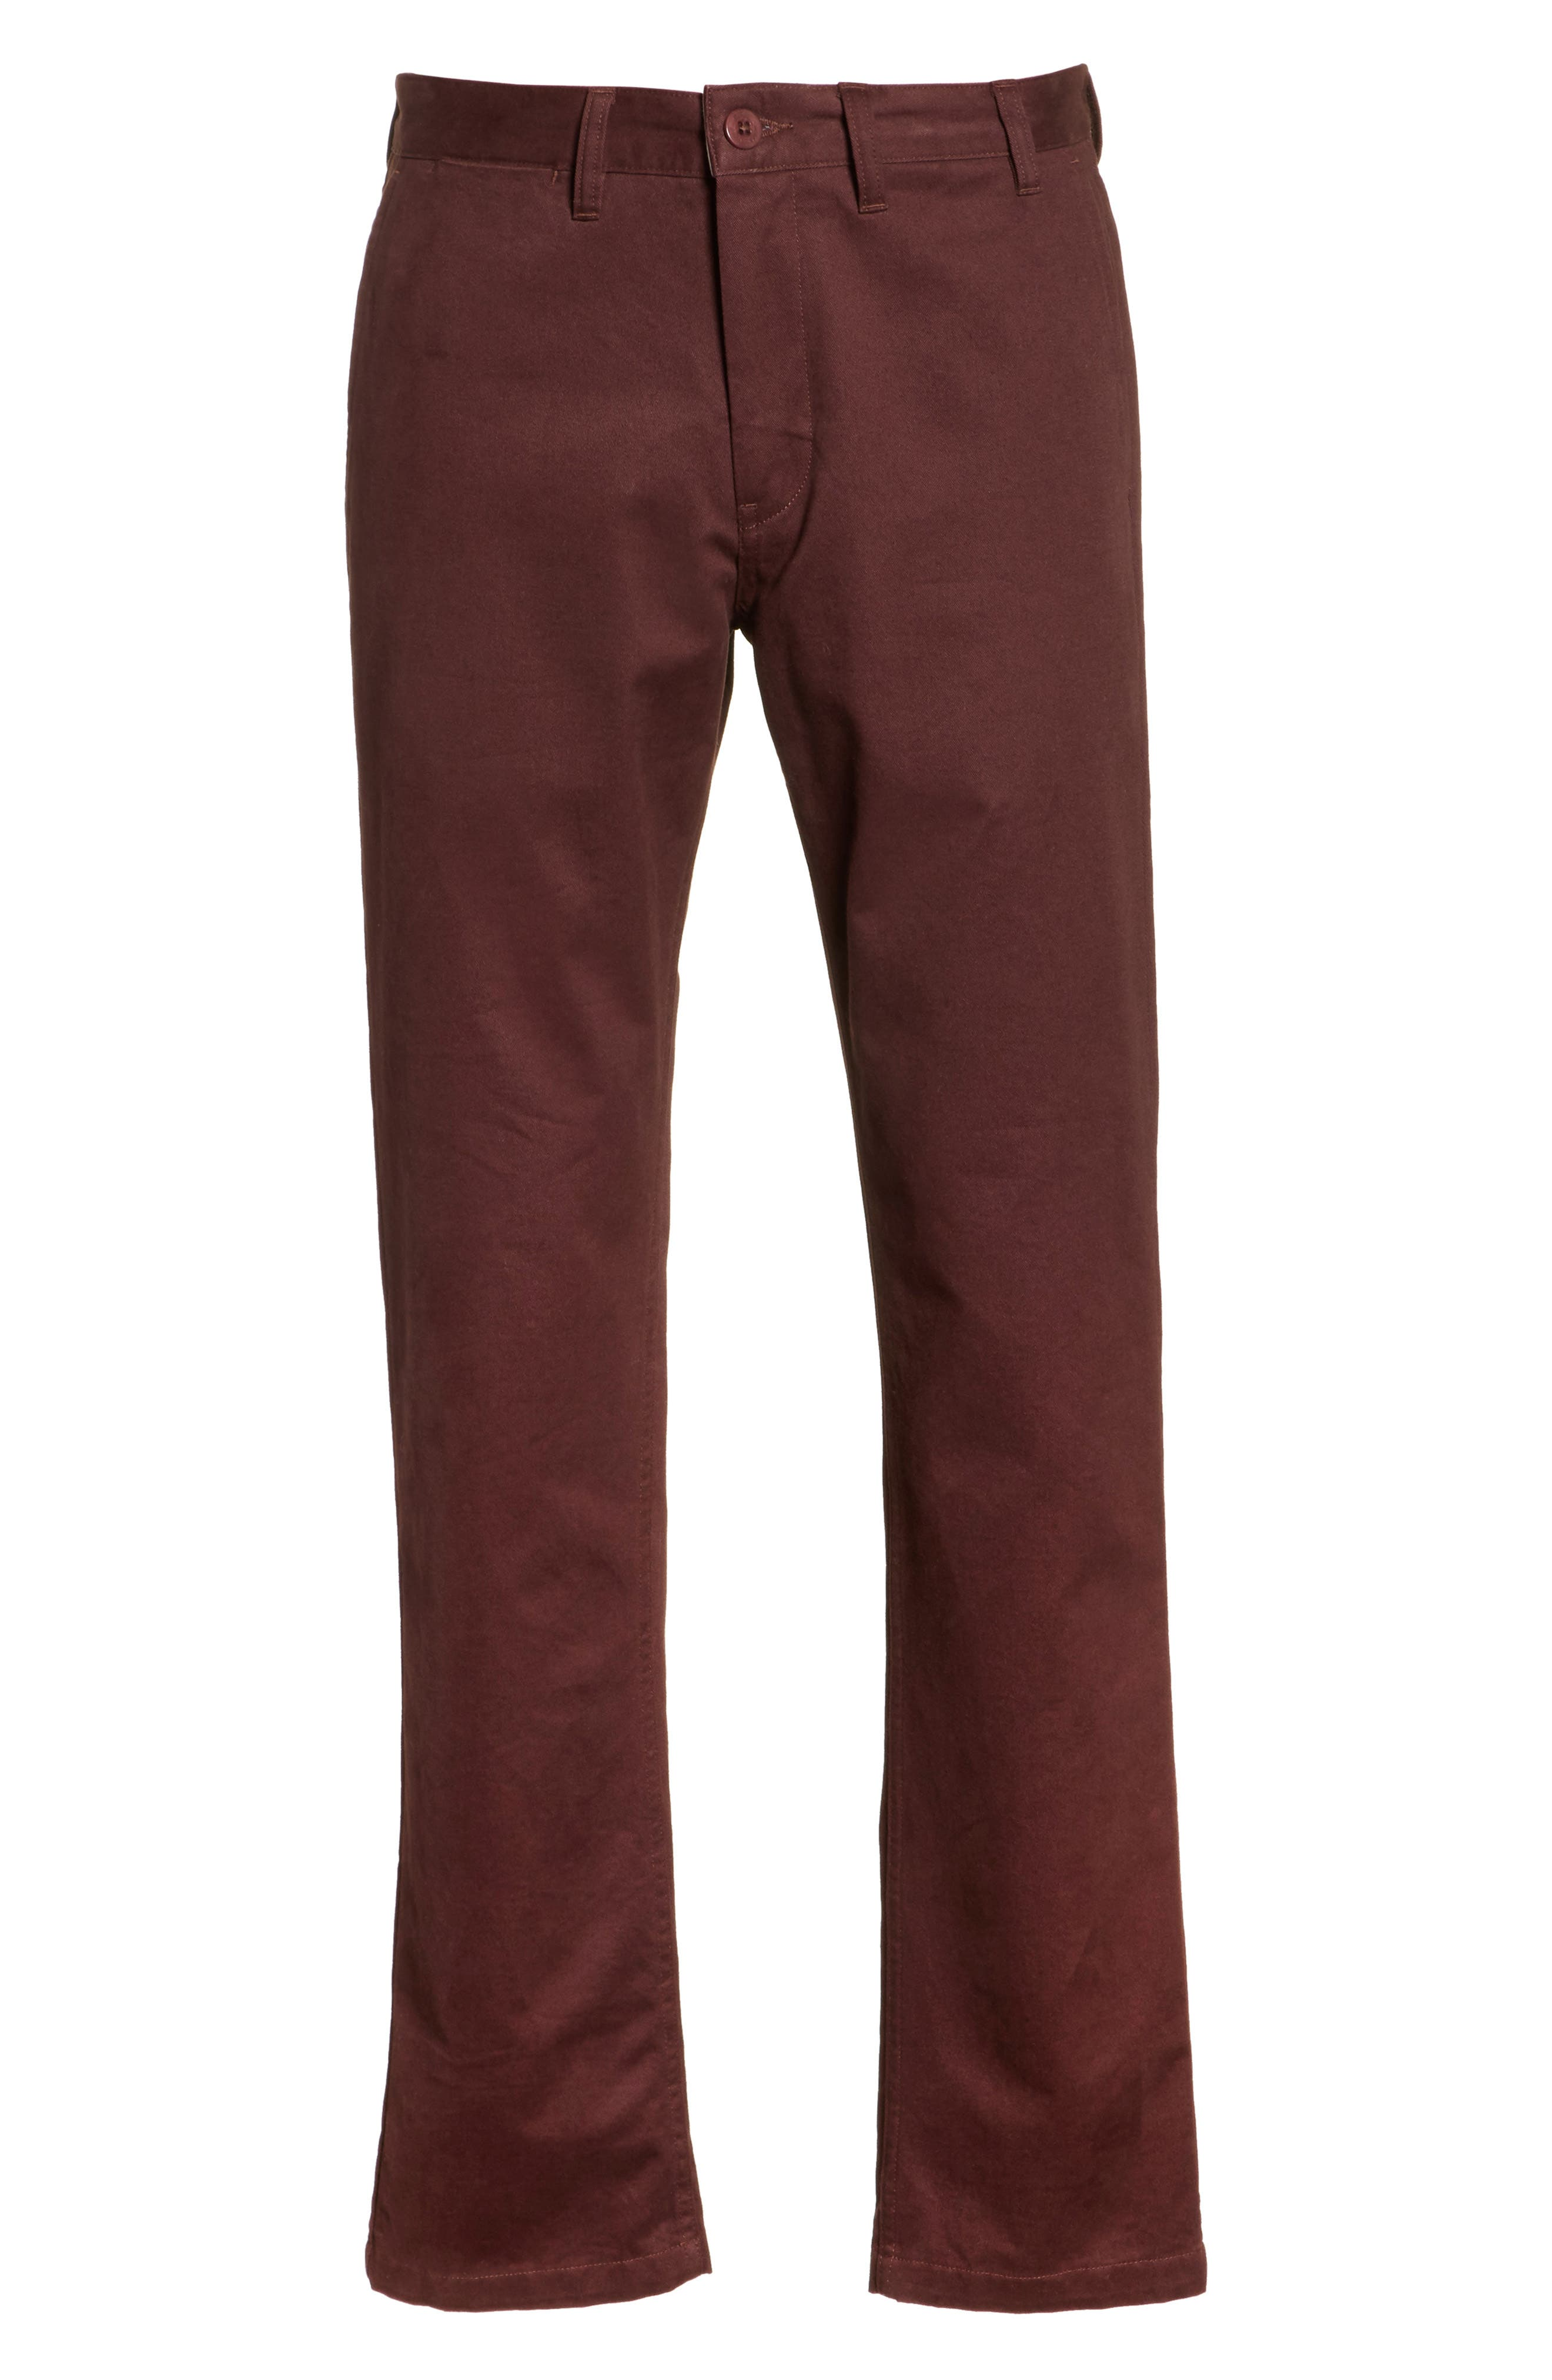 Aros Brushed Twill Chinos,                             Alternate thumbnail 6, color,                             Hematite Red